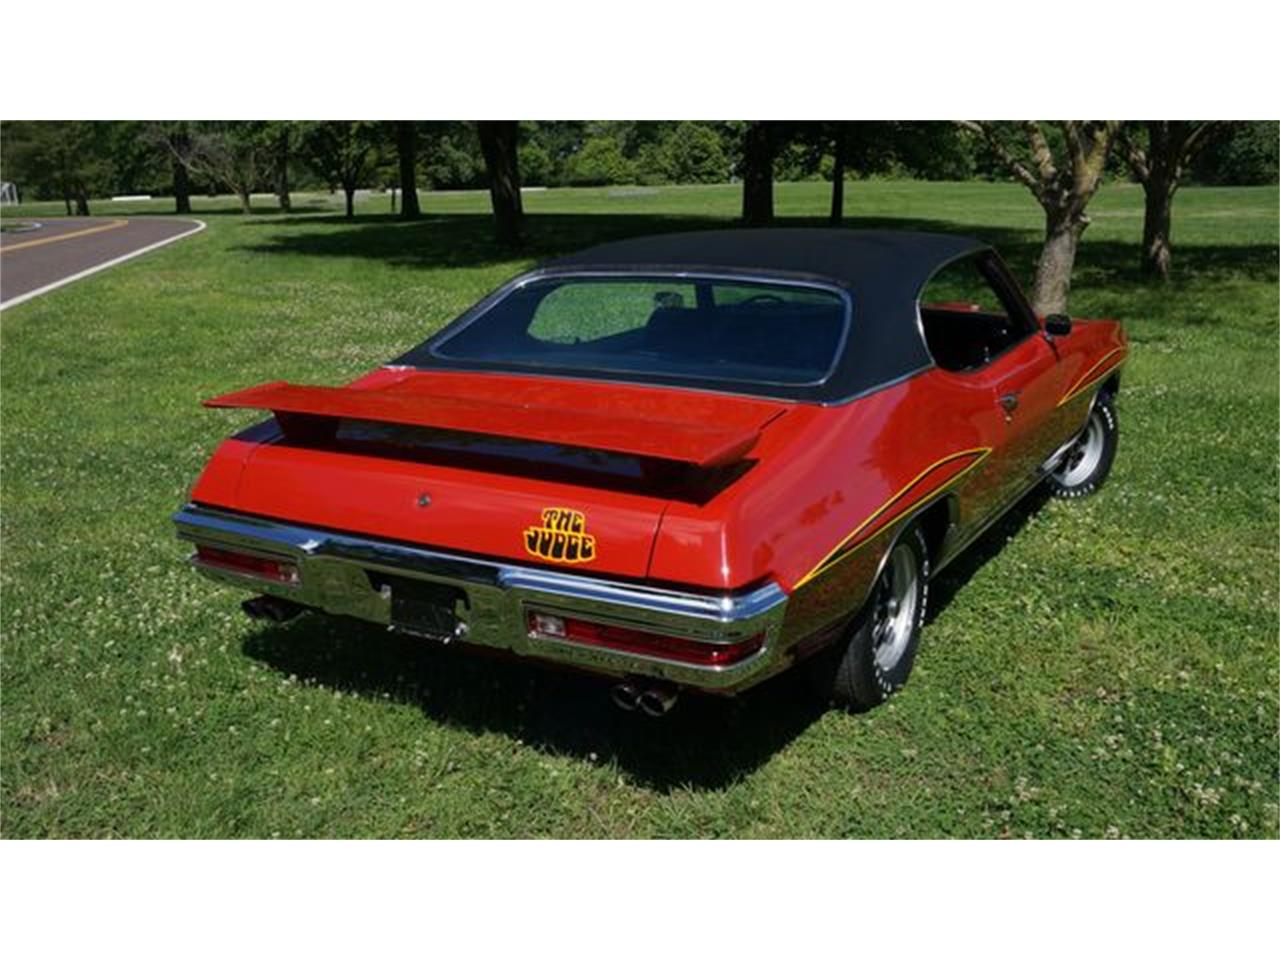 Large Picture of 1970 GTO located in Valley Park Missouri - $49,995.00 - Q8A0